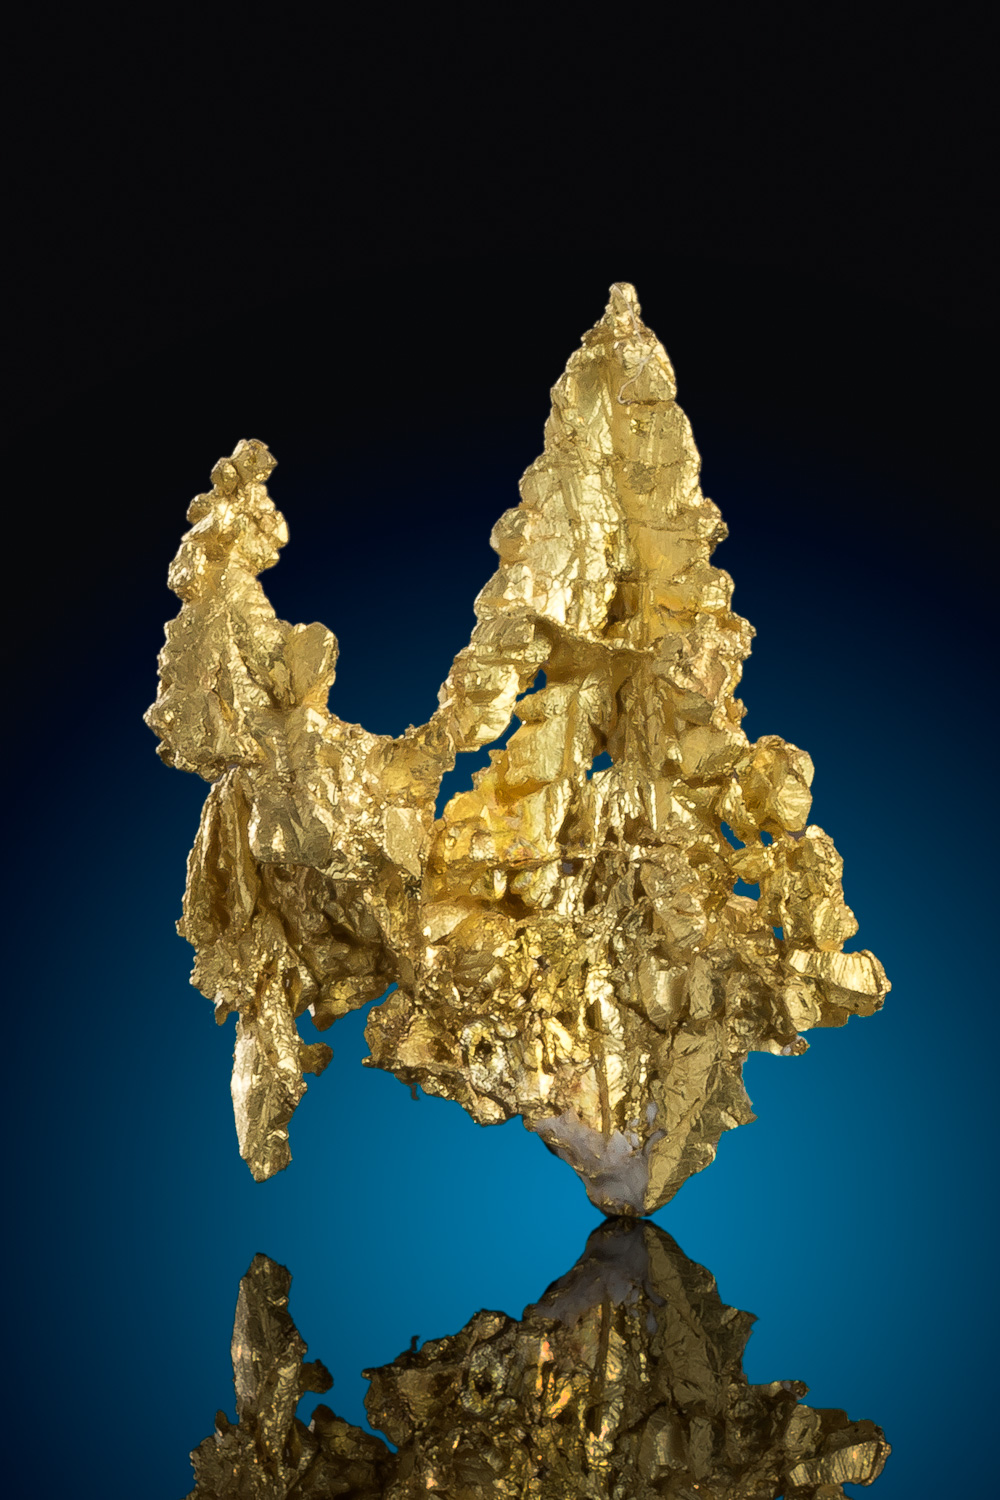 Brilliant and Unique - Gold Crystal from the Diltz Mine